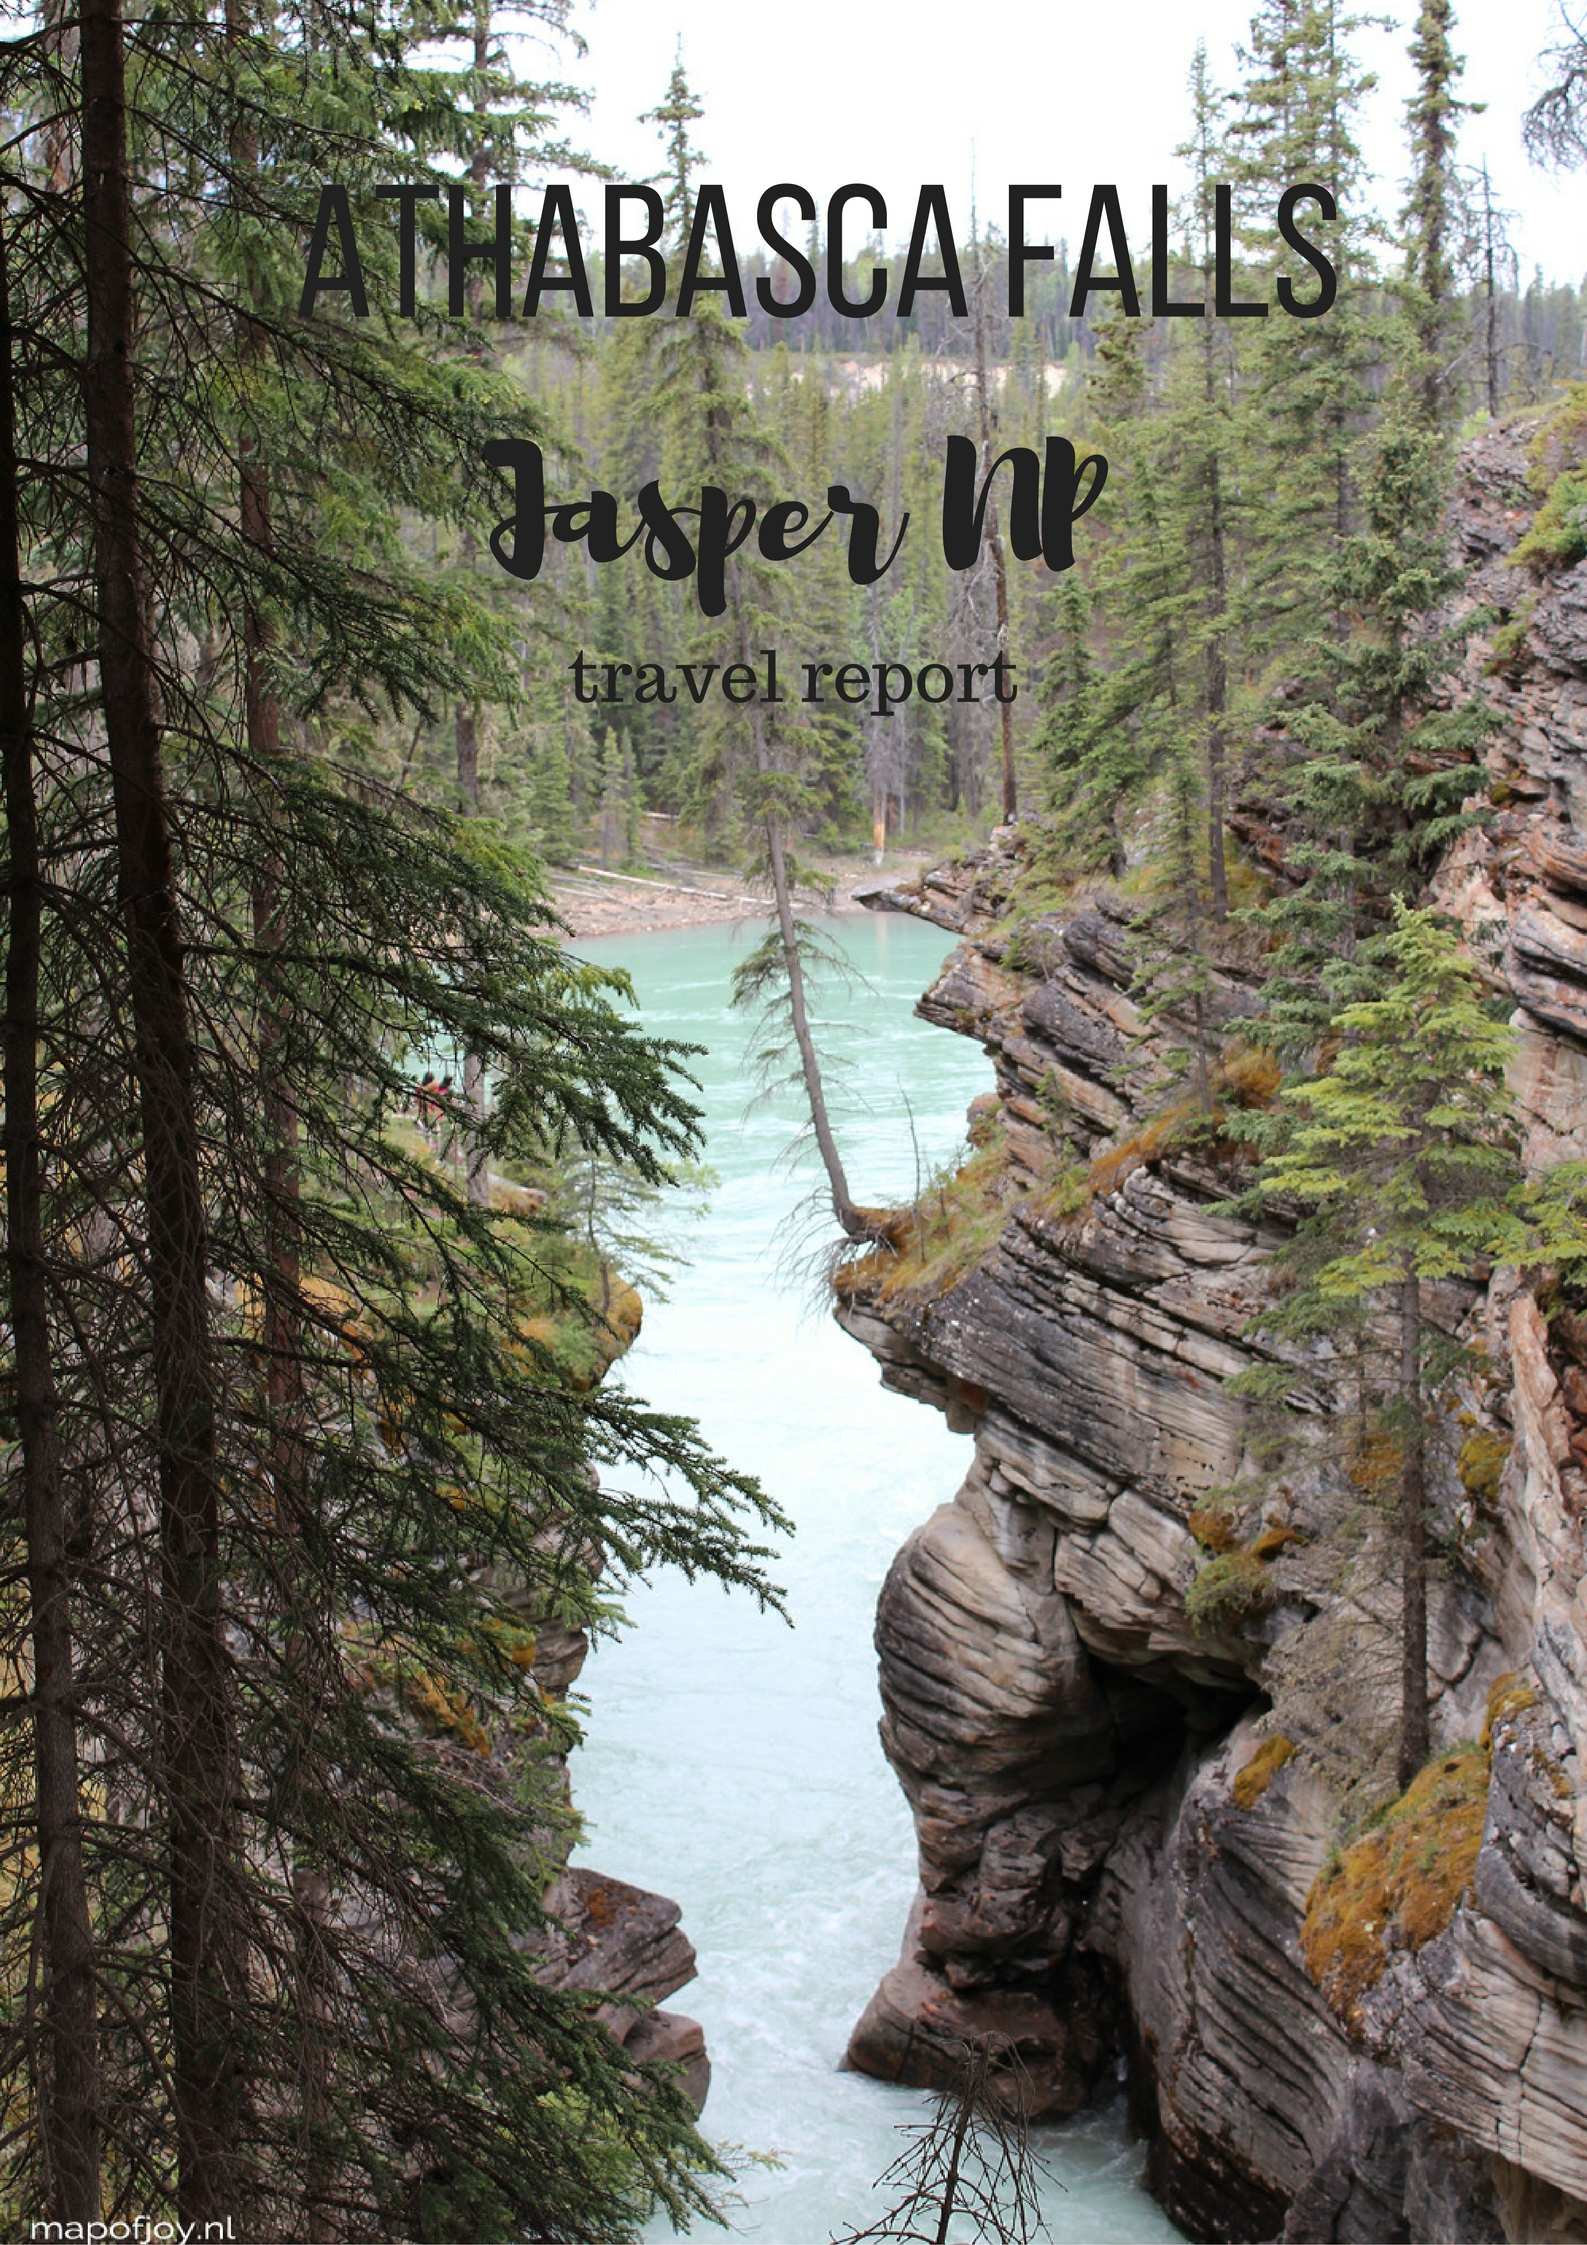 Athabasca Falls and River, Jasper NP, Canada - travel report by Map of Joy